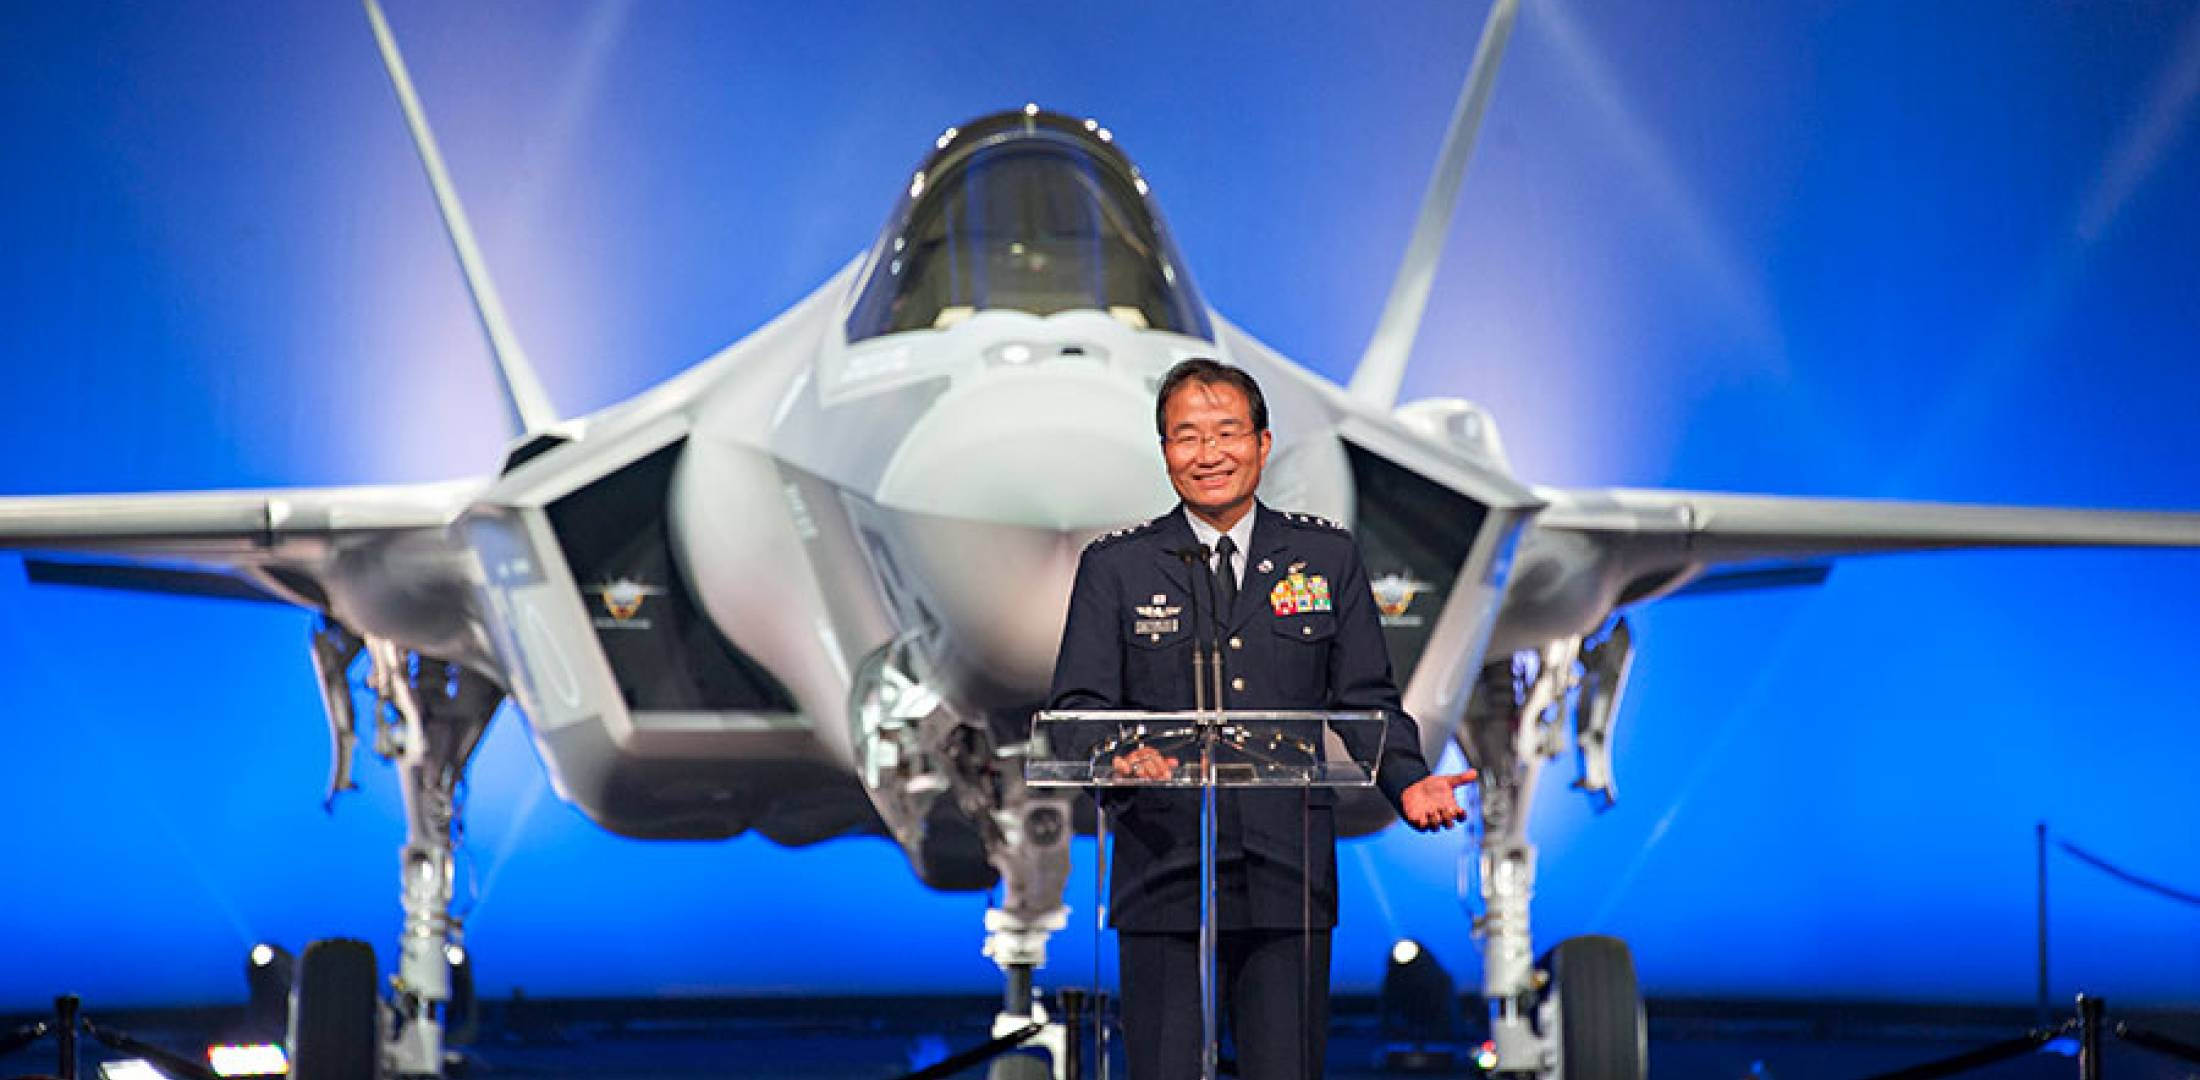 Attractive The Chief Of The Japan Air Self Defense Force (JASDF) Gen. Yoshiyuki  Sugiyama, At The Rollout Ceremony In Fort Worth. (Photo: Lockheed Martin)